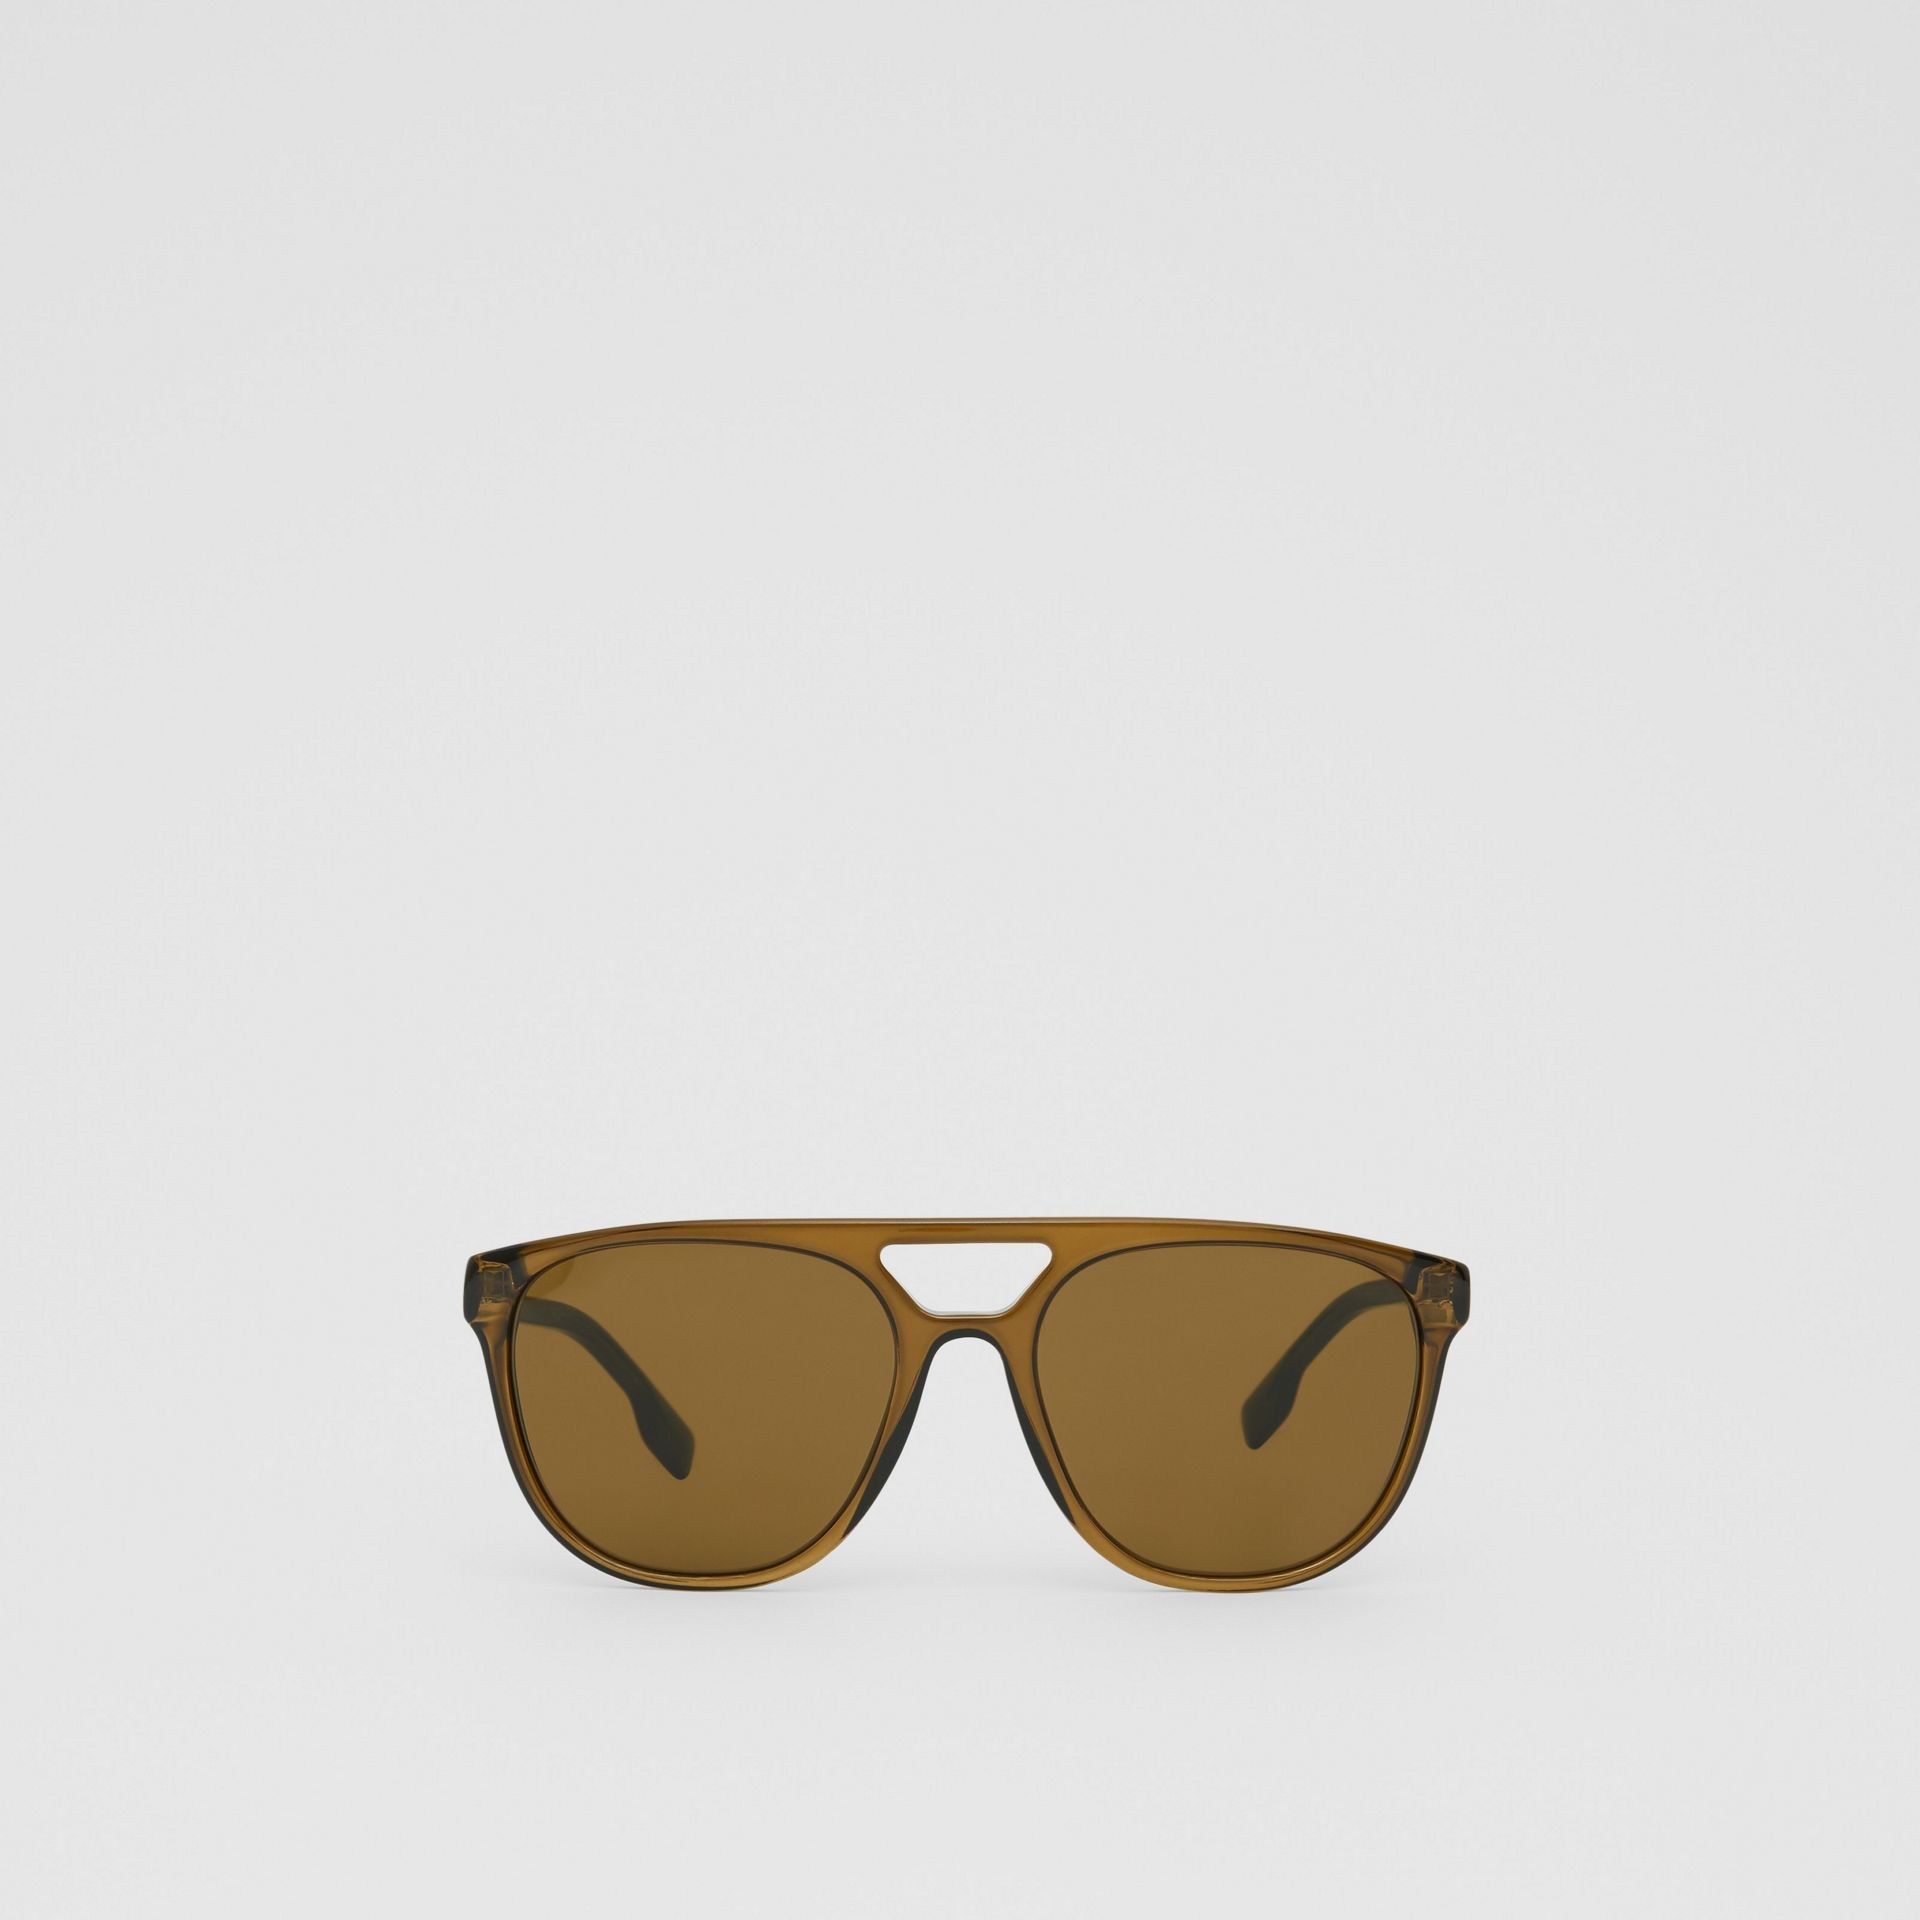 Navigator Sunglasses in Olive Green - Men | Burberry - gallery image 0